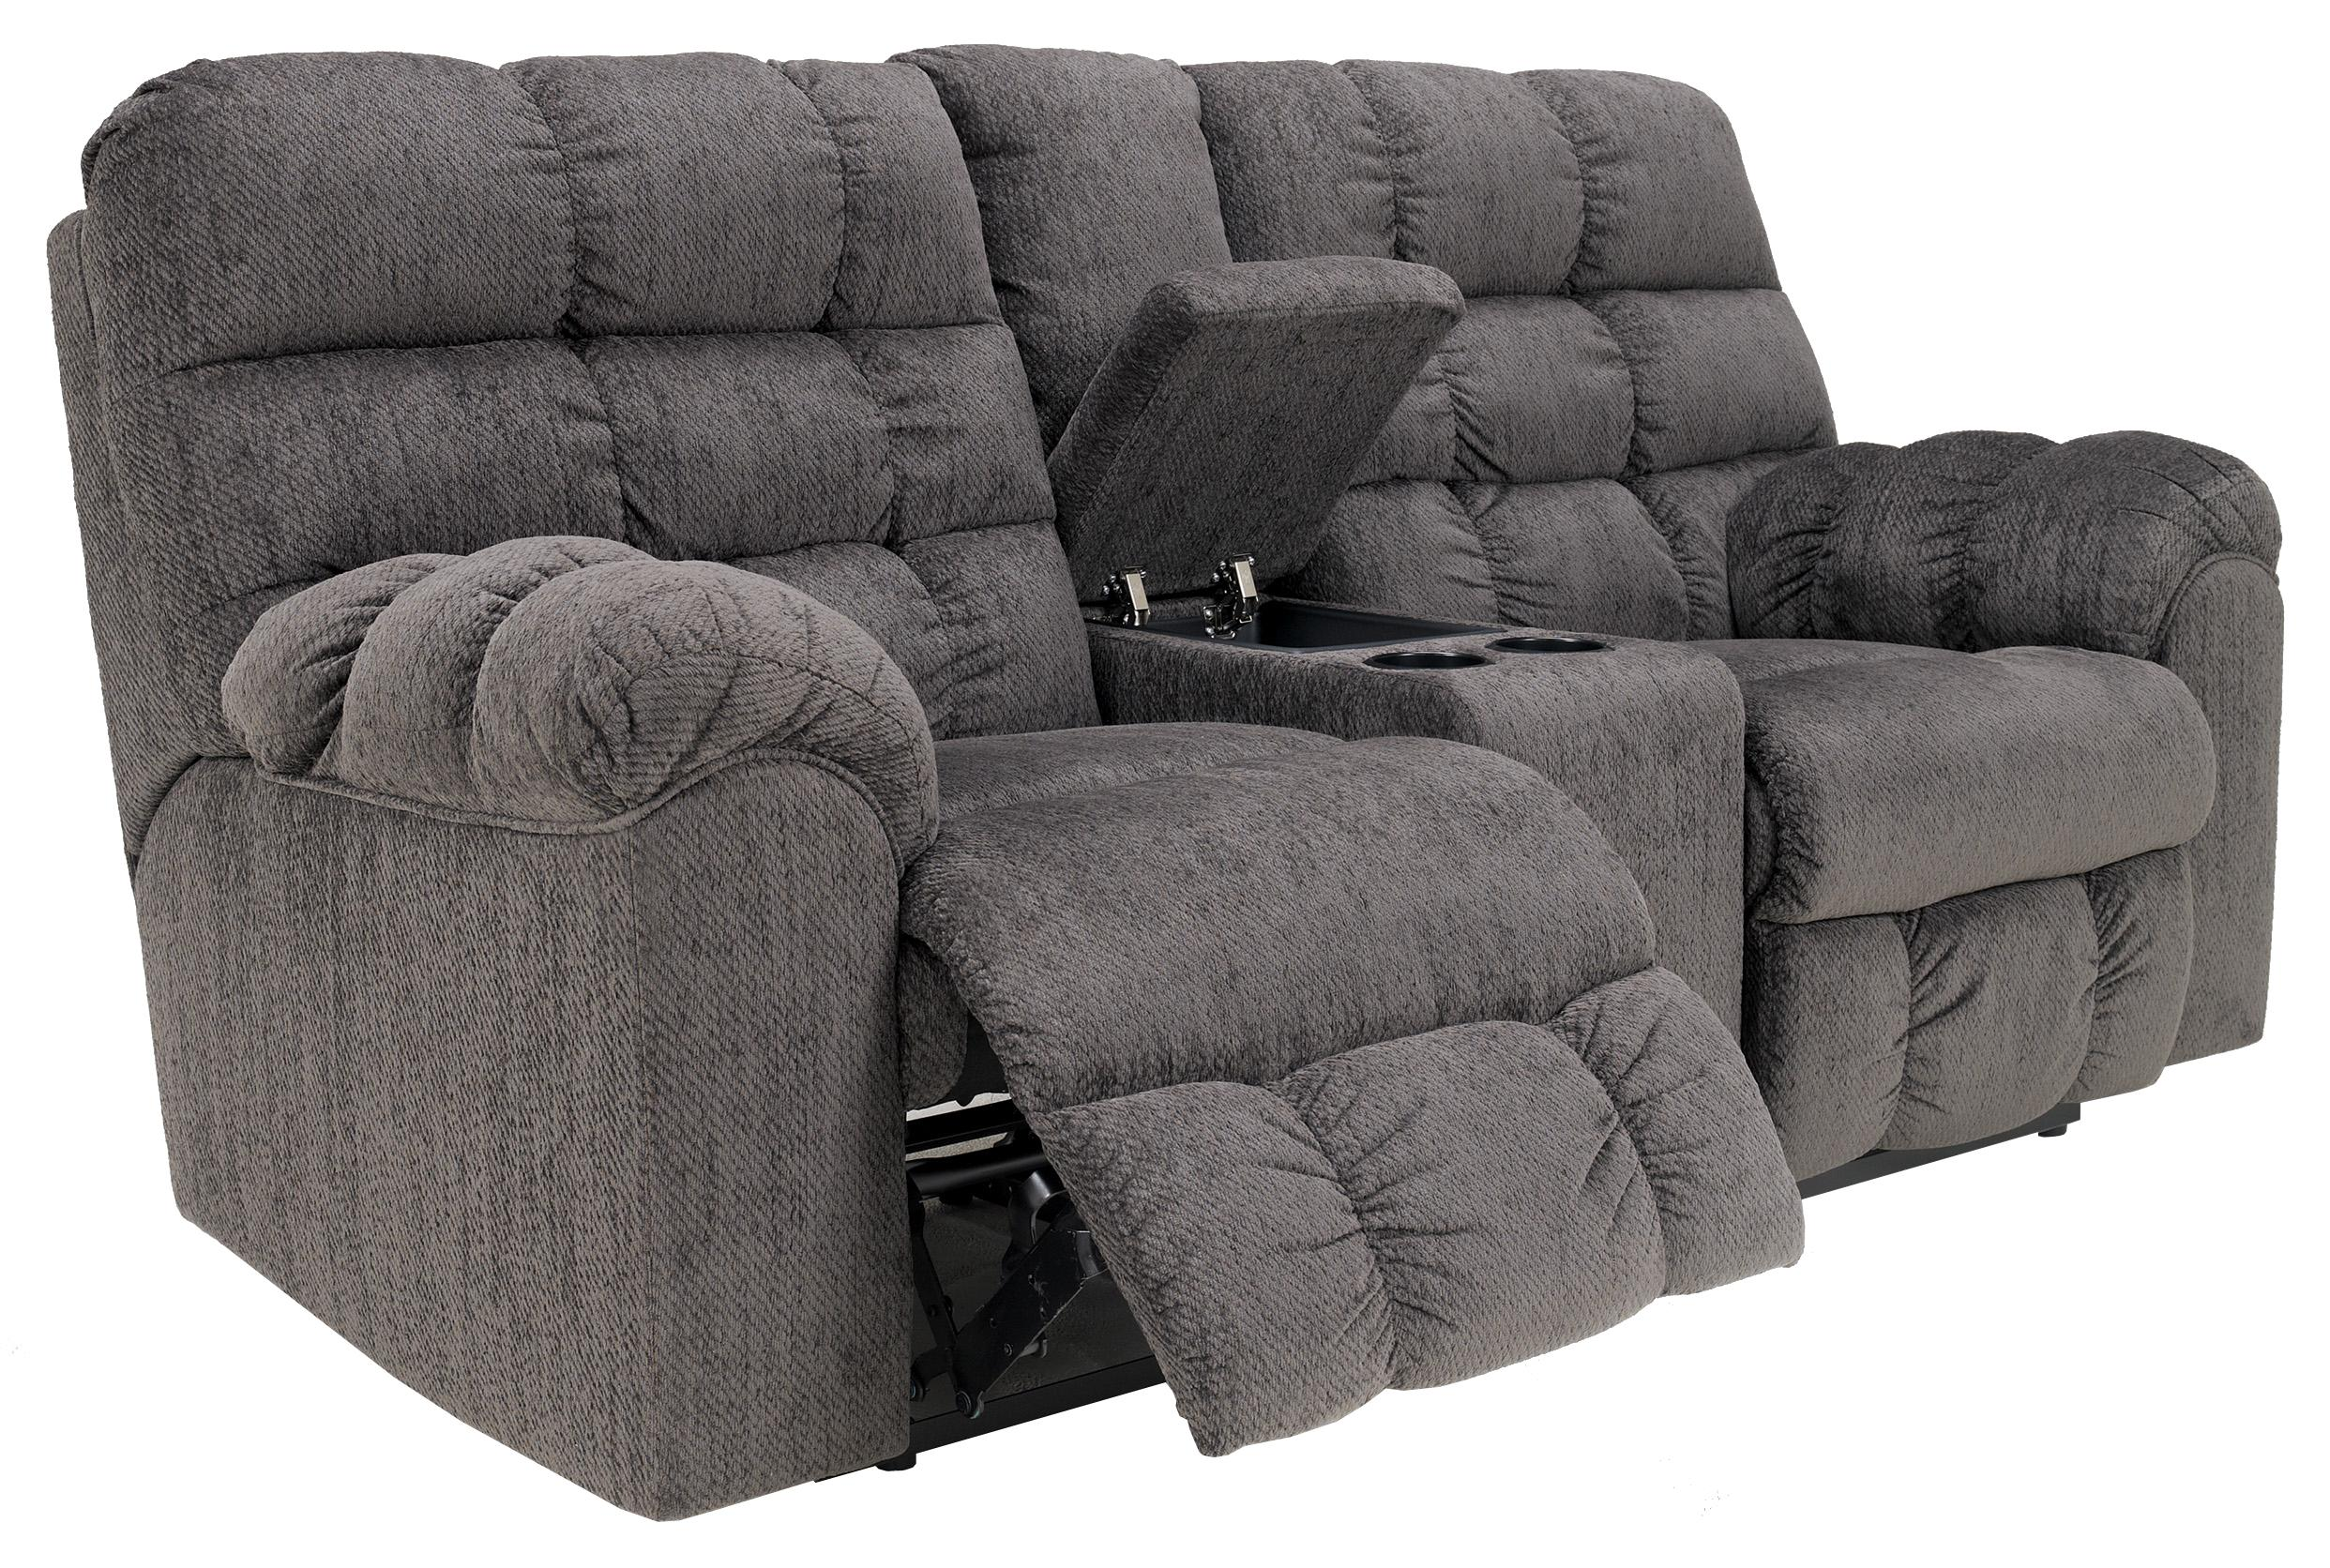 Del Sol As Acieona Slate 5830094 Double Reclining